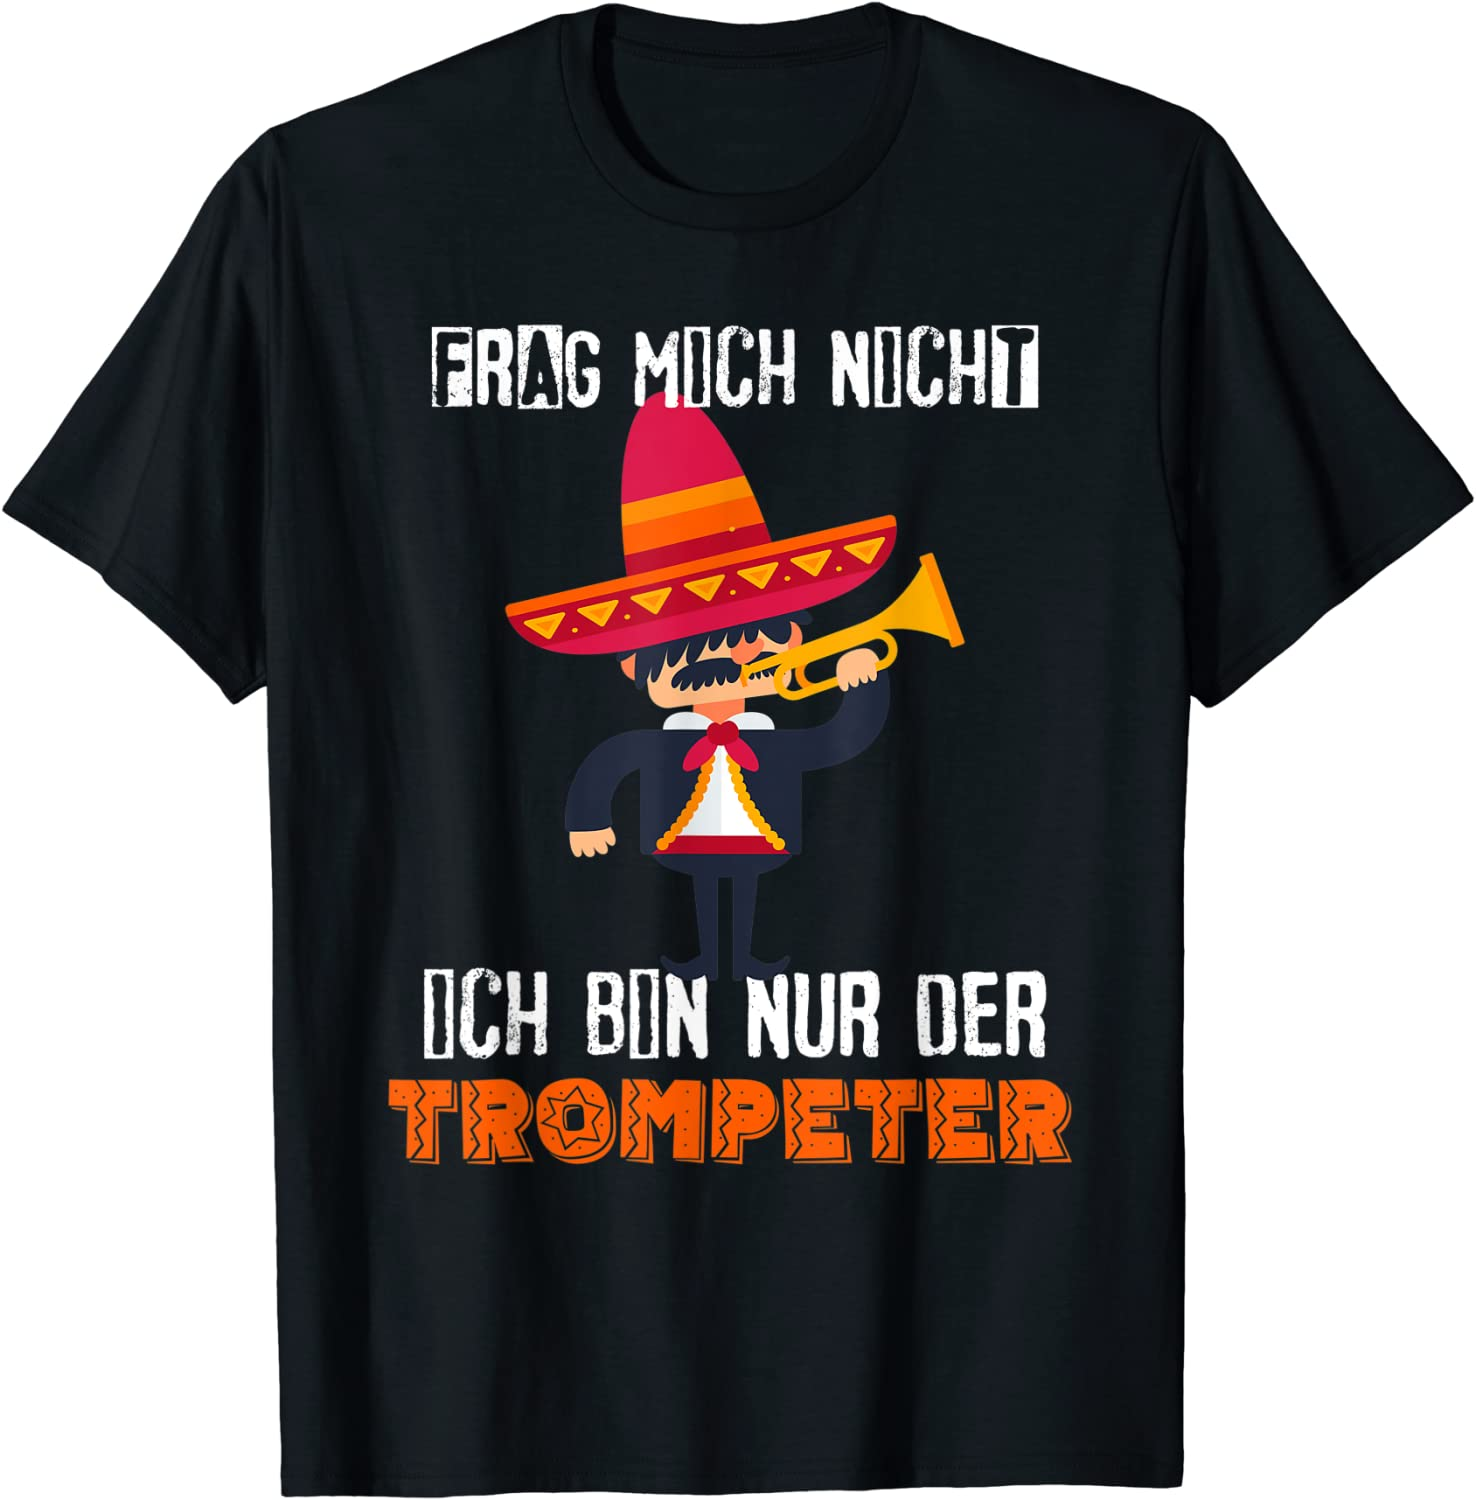 Trompeter - Mexican style-Kinder ab 3 Jahre -lustiger